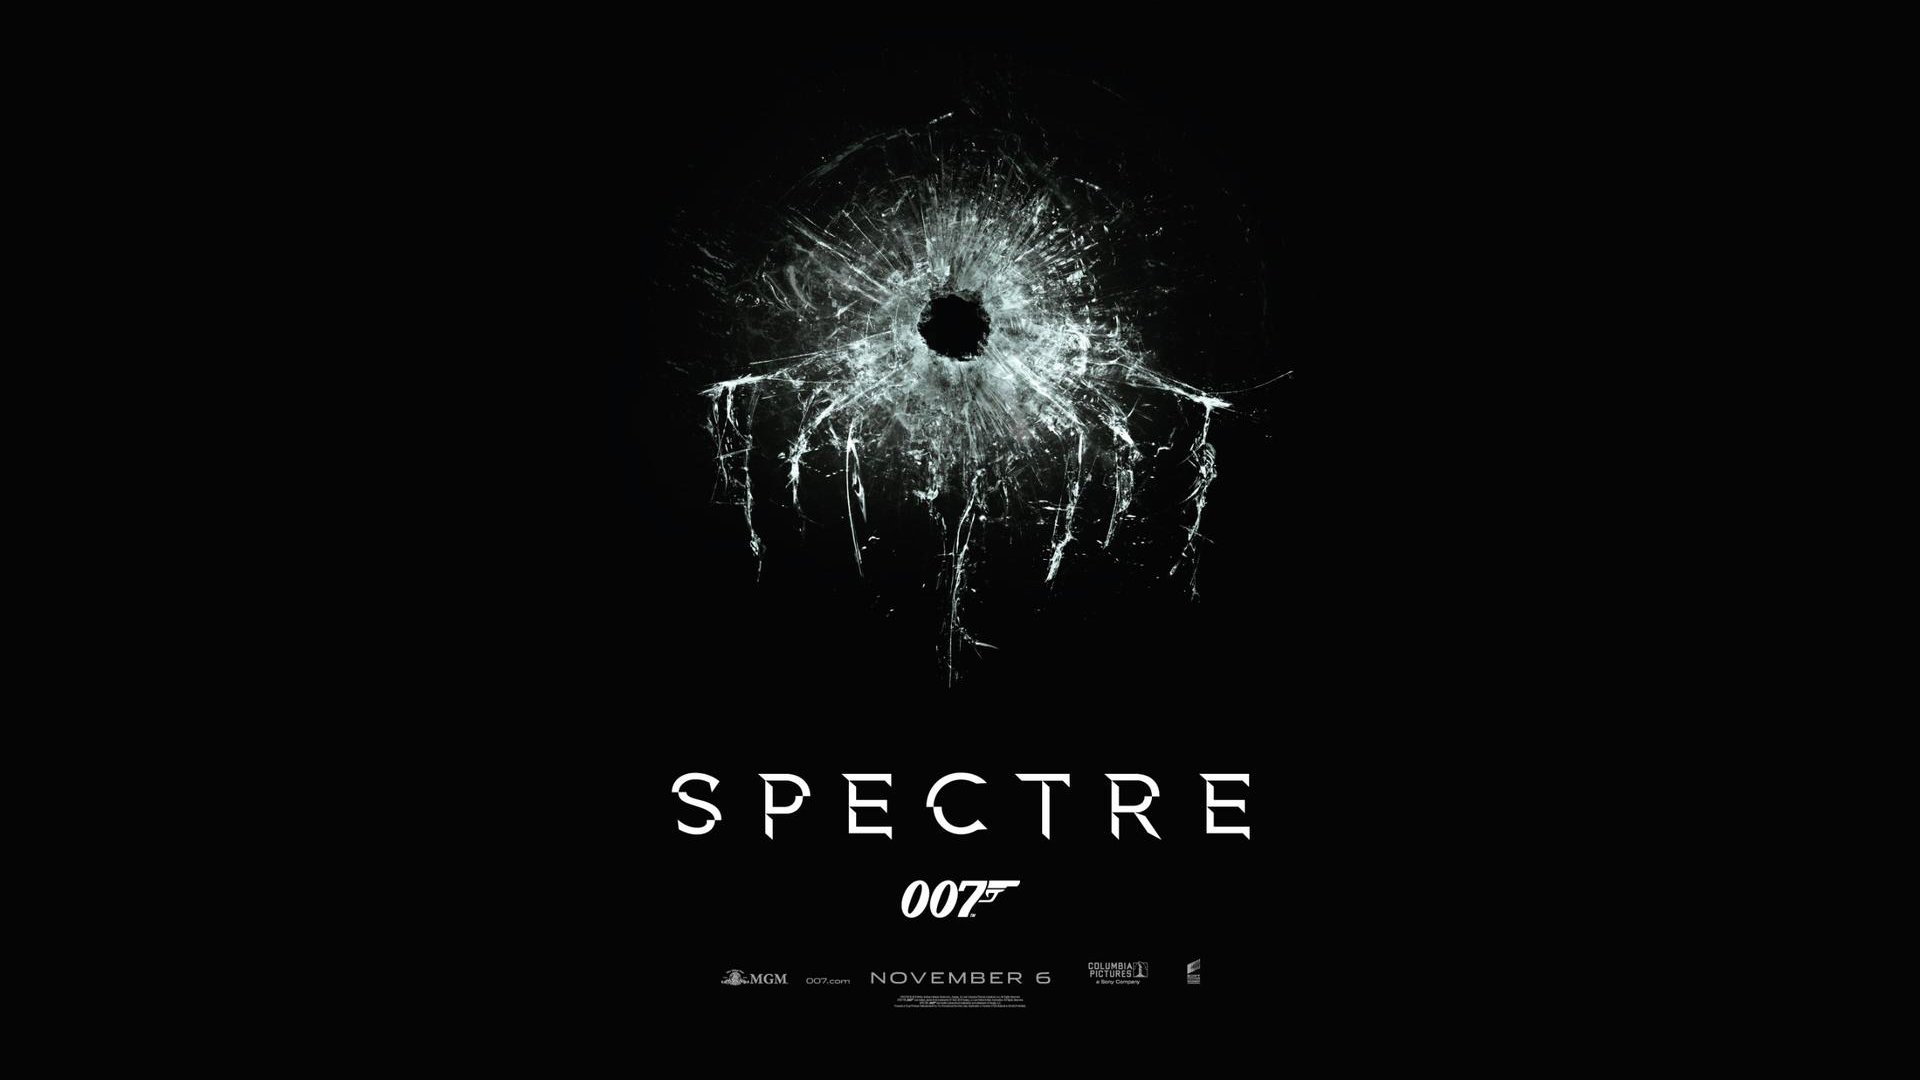 Spectre Enters Guinness World Records for Largest Film Stunt Explosion - OC Movie Reviews - Movie Reviews, Movie News, Documentary Reviews, Short Films, Short Film Reviews, Trailers, Movie Trailers, Interviews, film reviews, film news, hollywood, indie films, documentaries